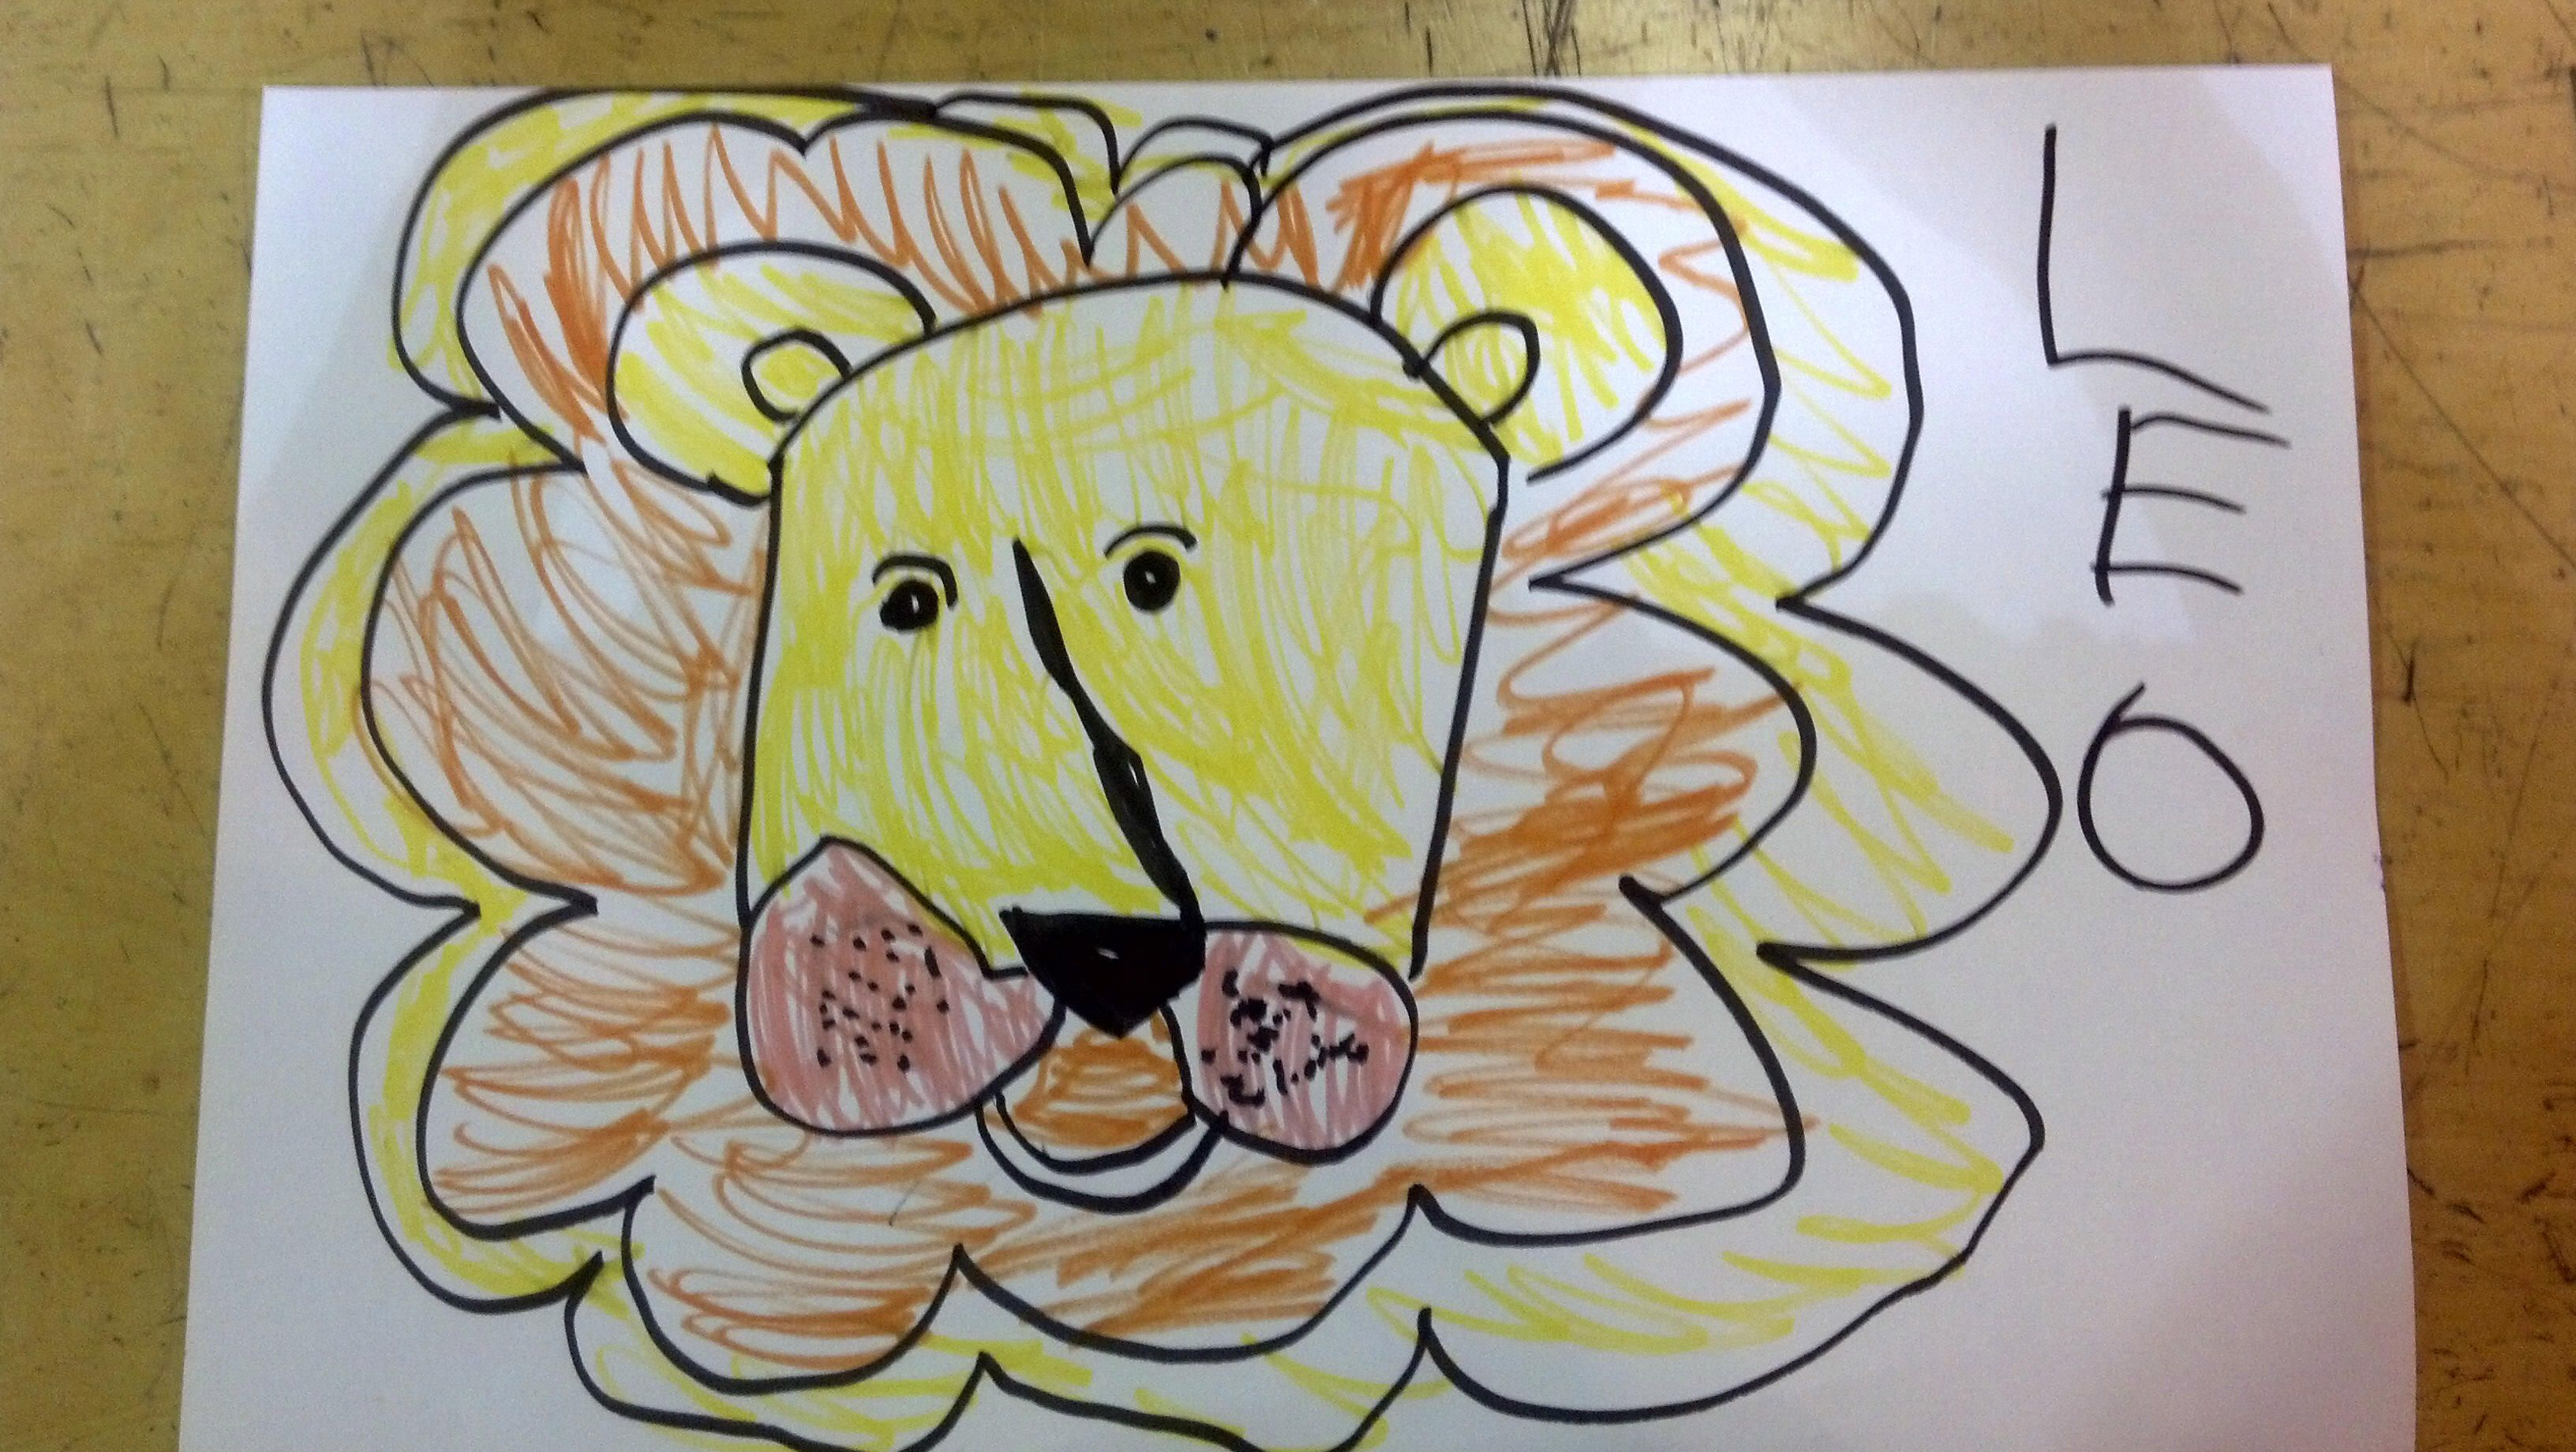 Leo the Lion from KidzArt's preschool drawing class at The Studio at Rush Creek in Maple Grove, MN.